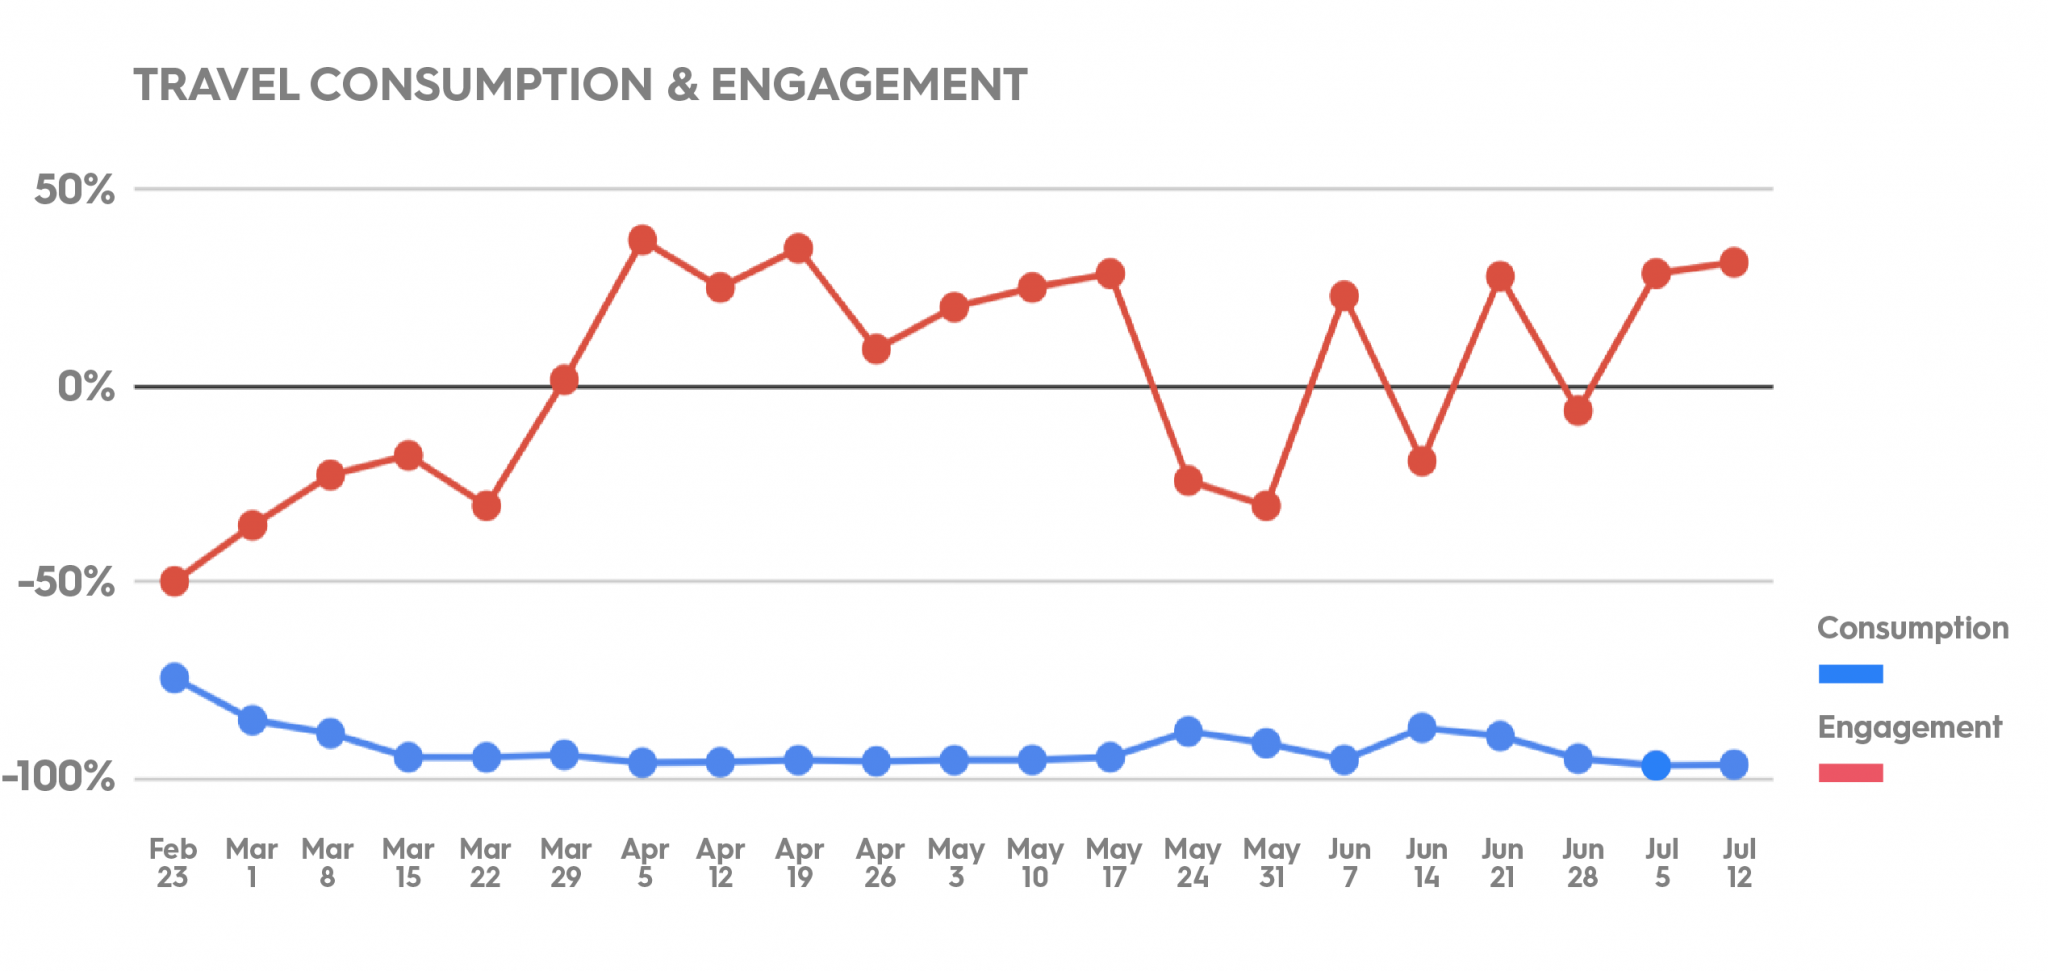 Travel consumption and engagement